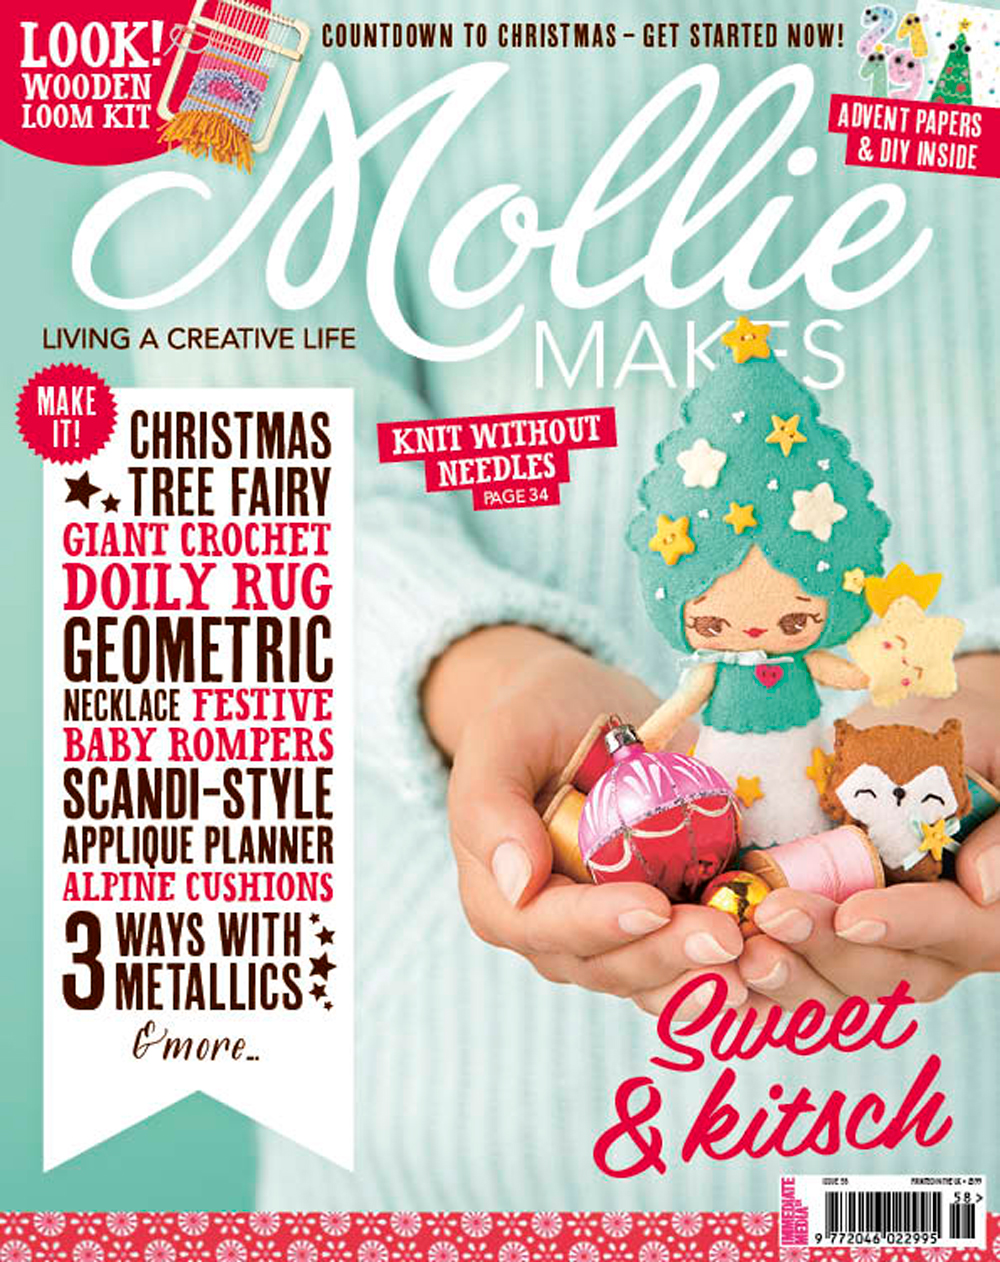 FEATURE | MOLLIE MAKES ISSUE 58